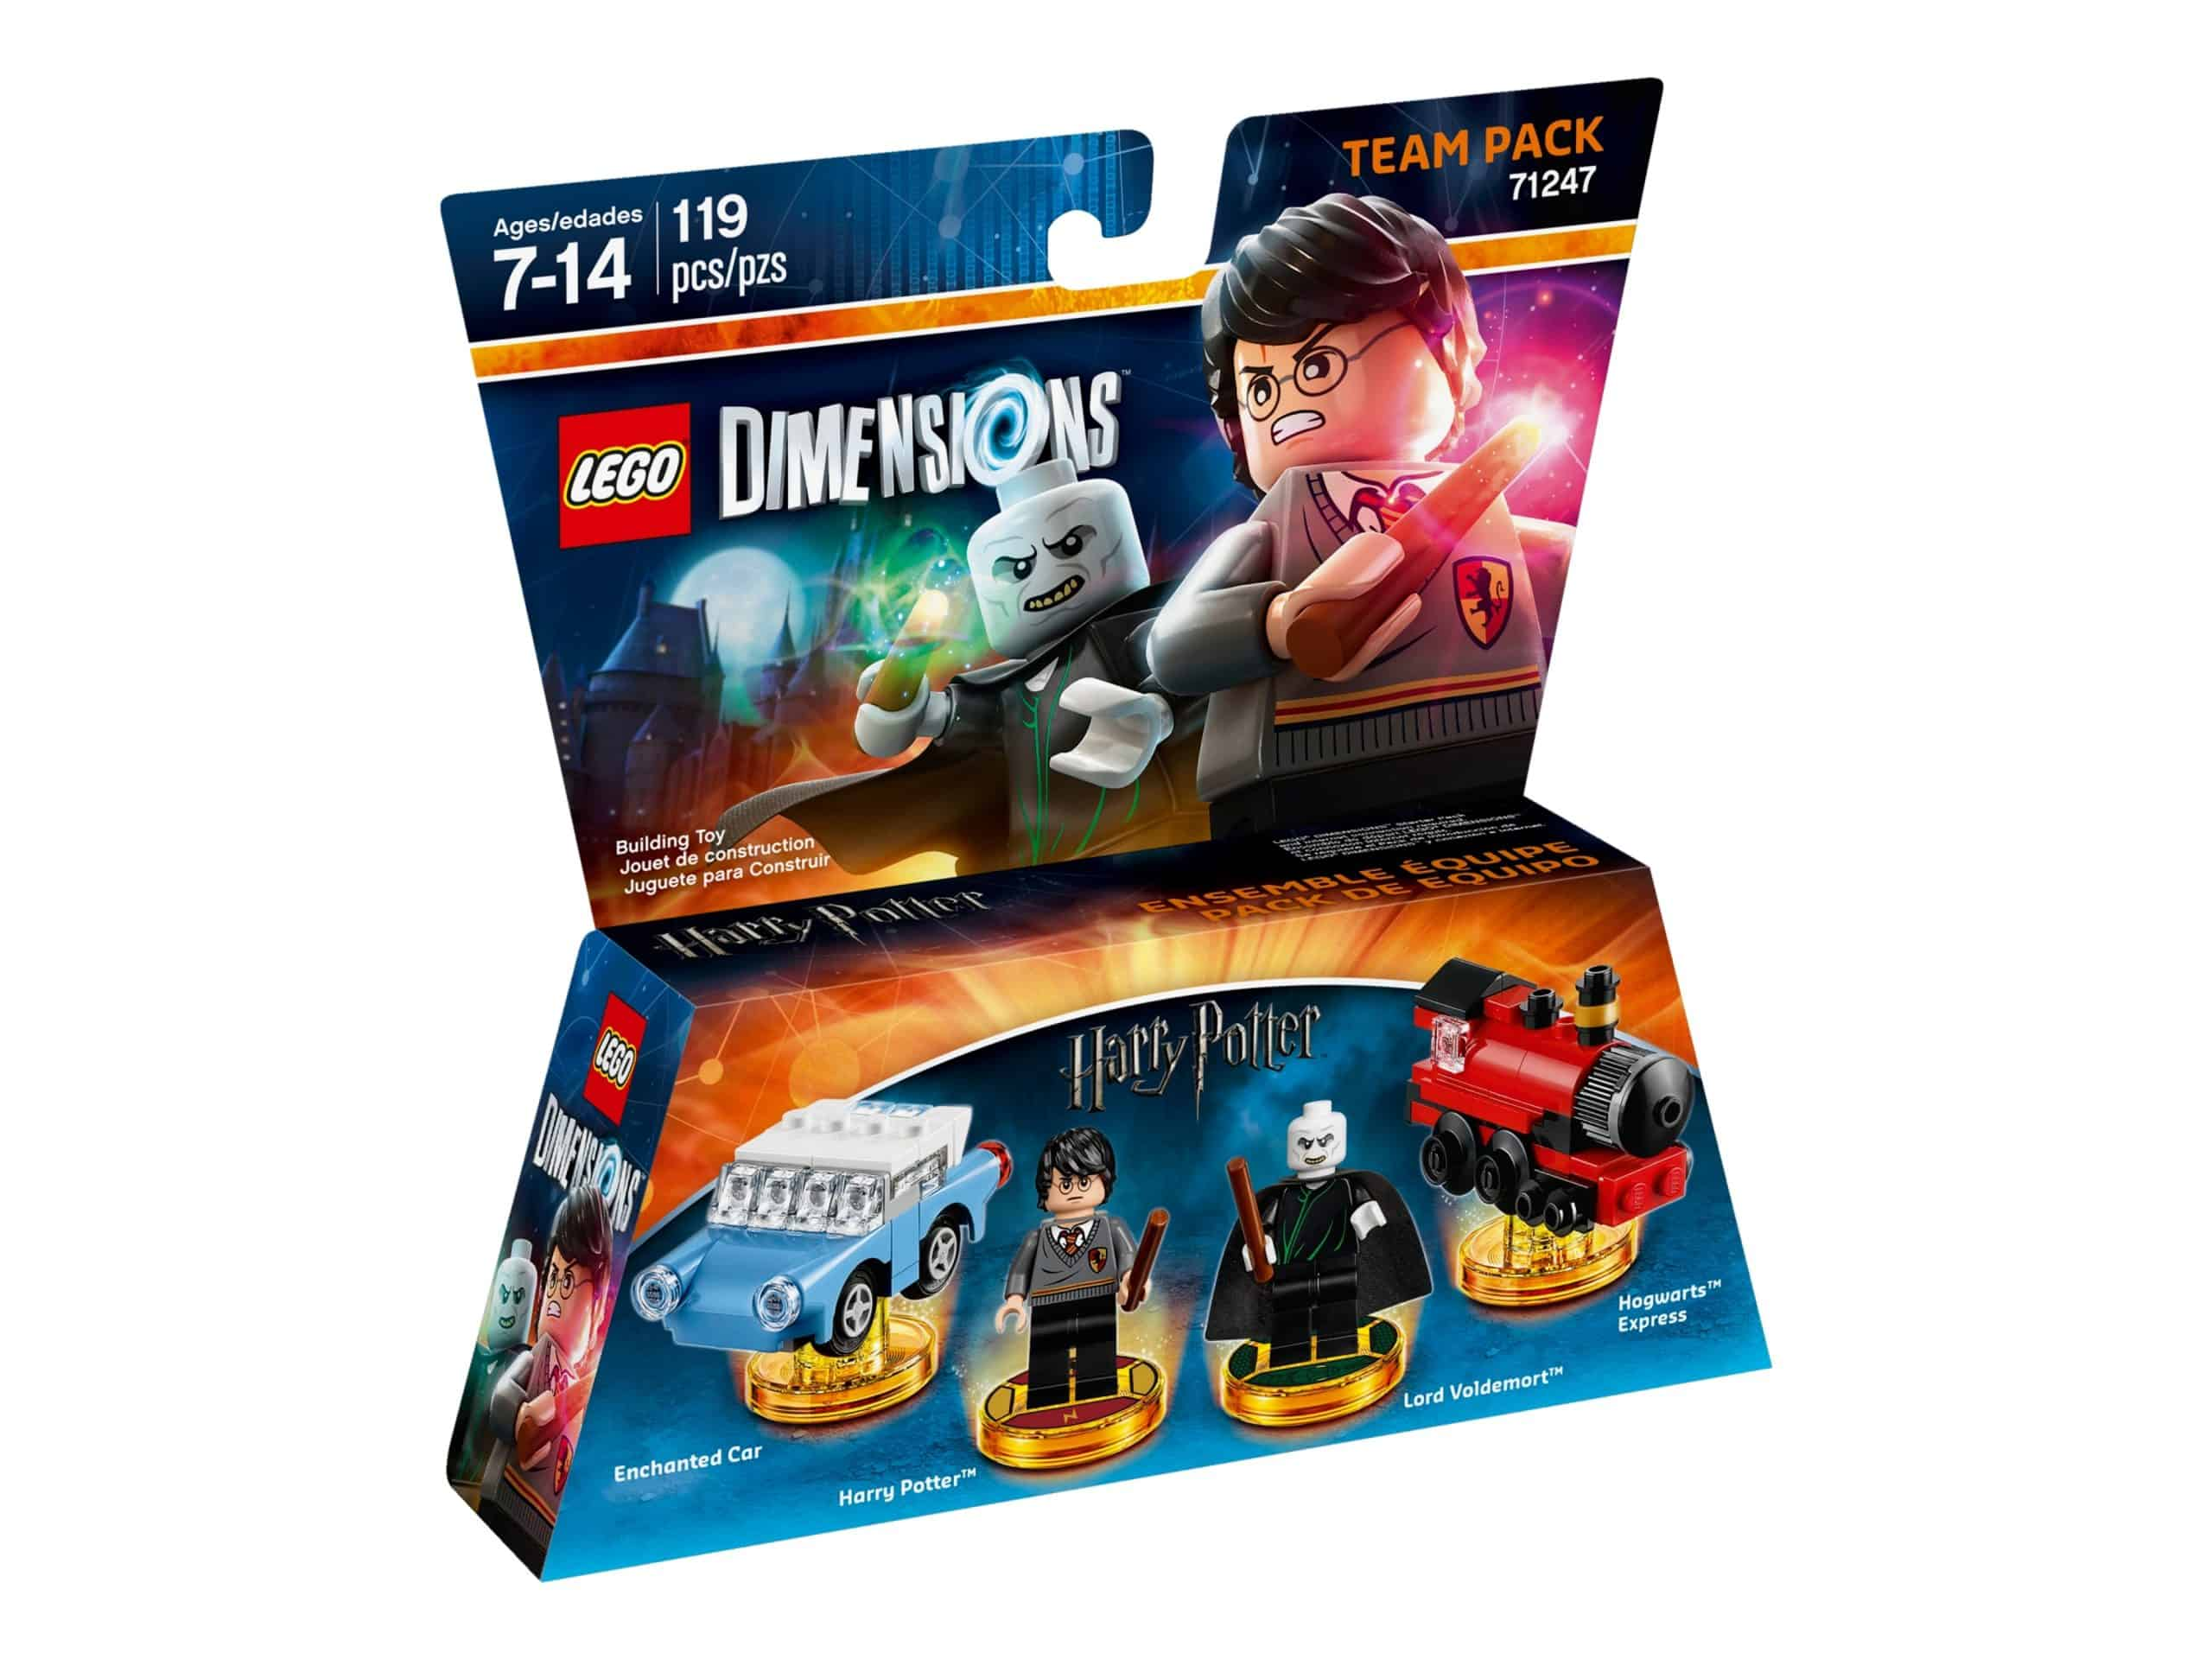 lego 71247 harry potter team pack scaled